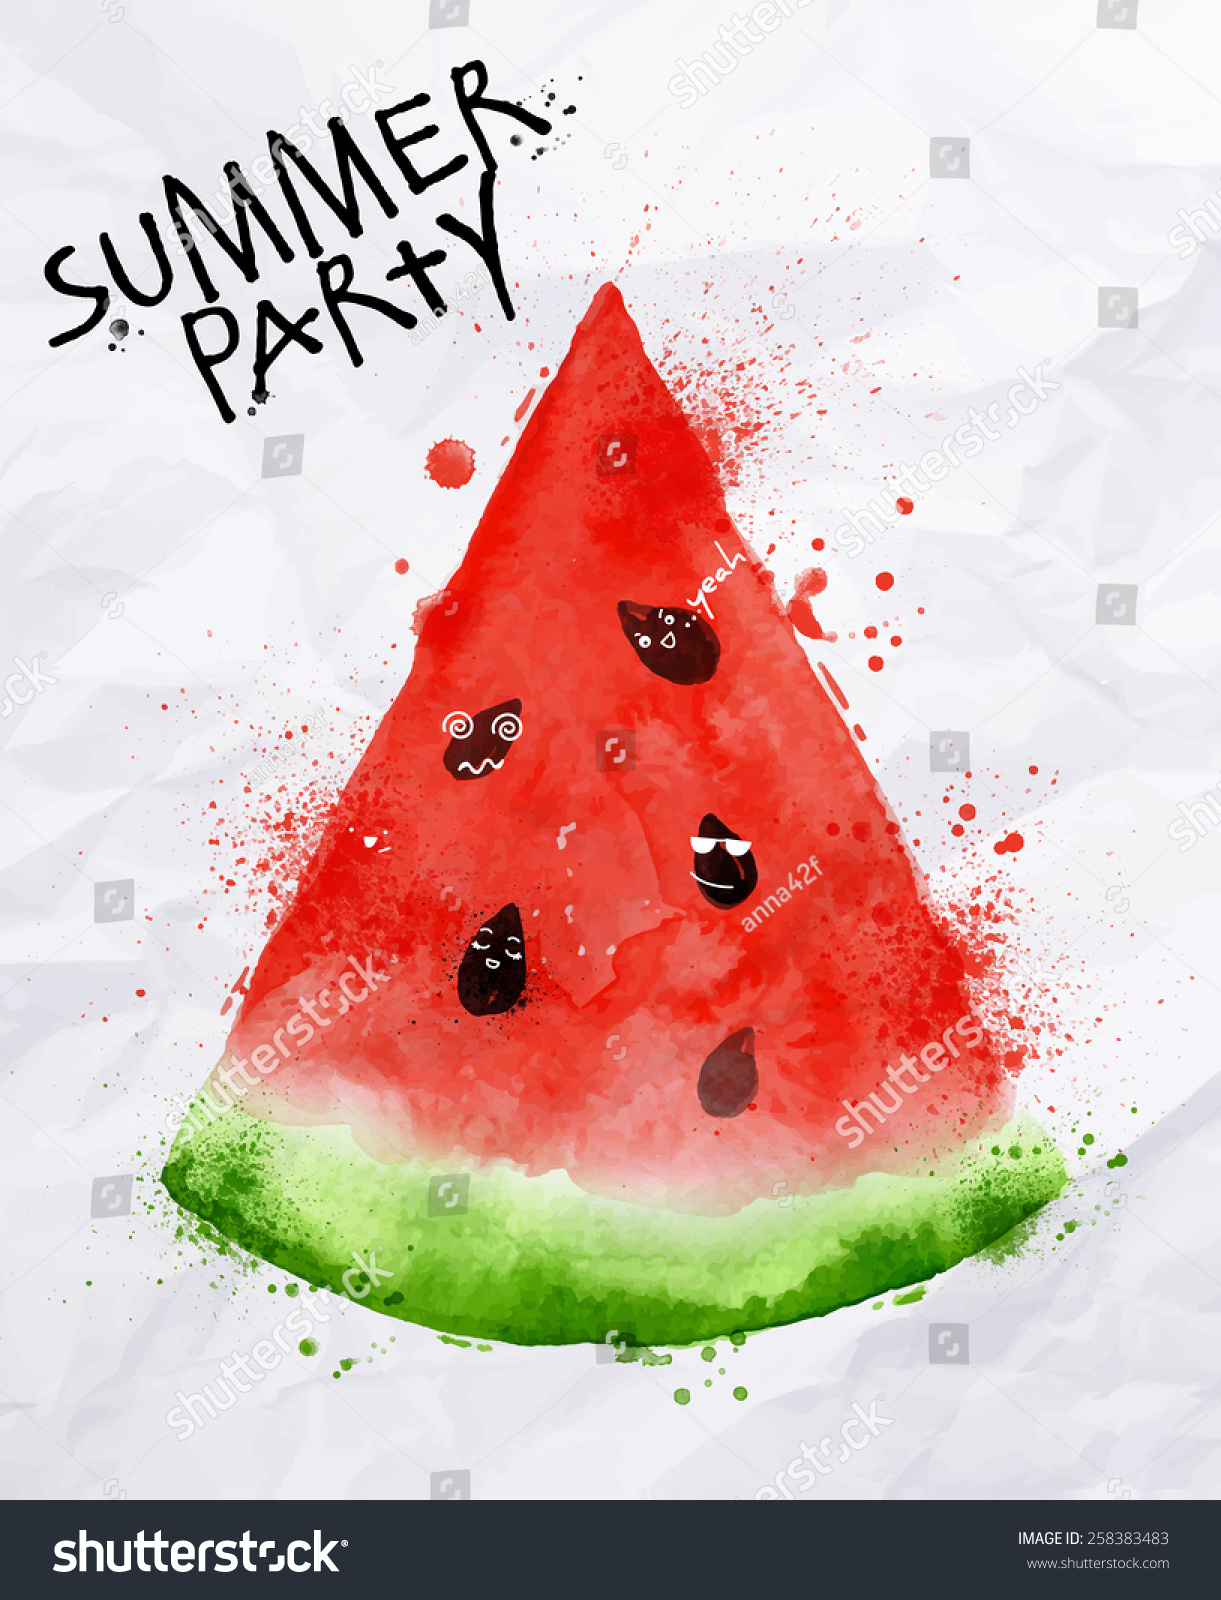 Poster Summer Party Slices Watermelon Seeds Stock Vector 258383483 ...